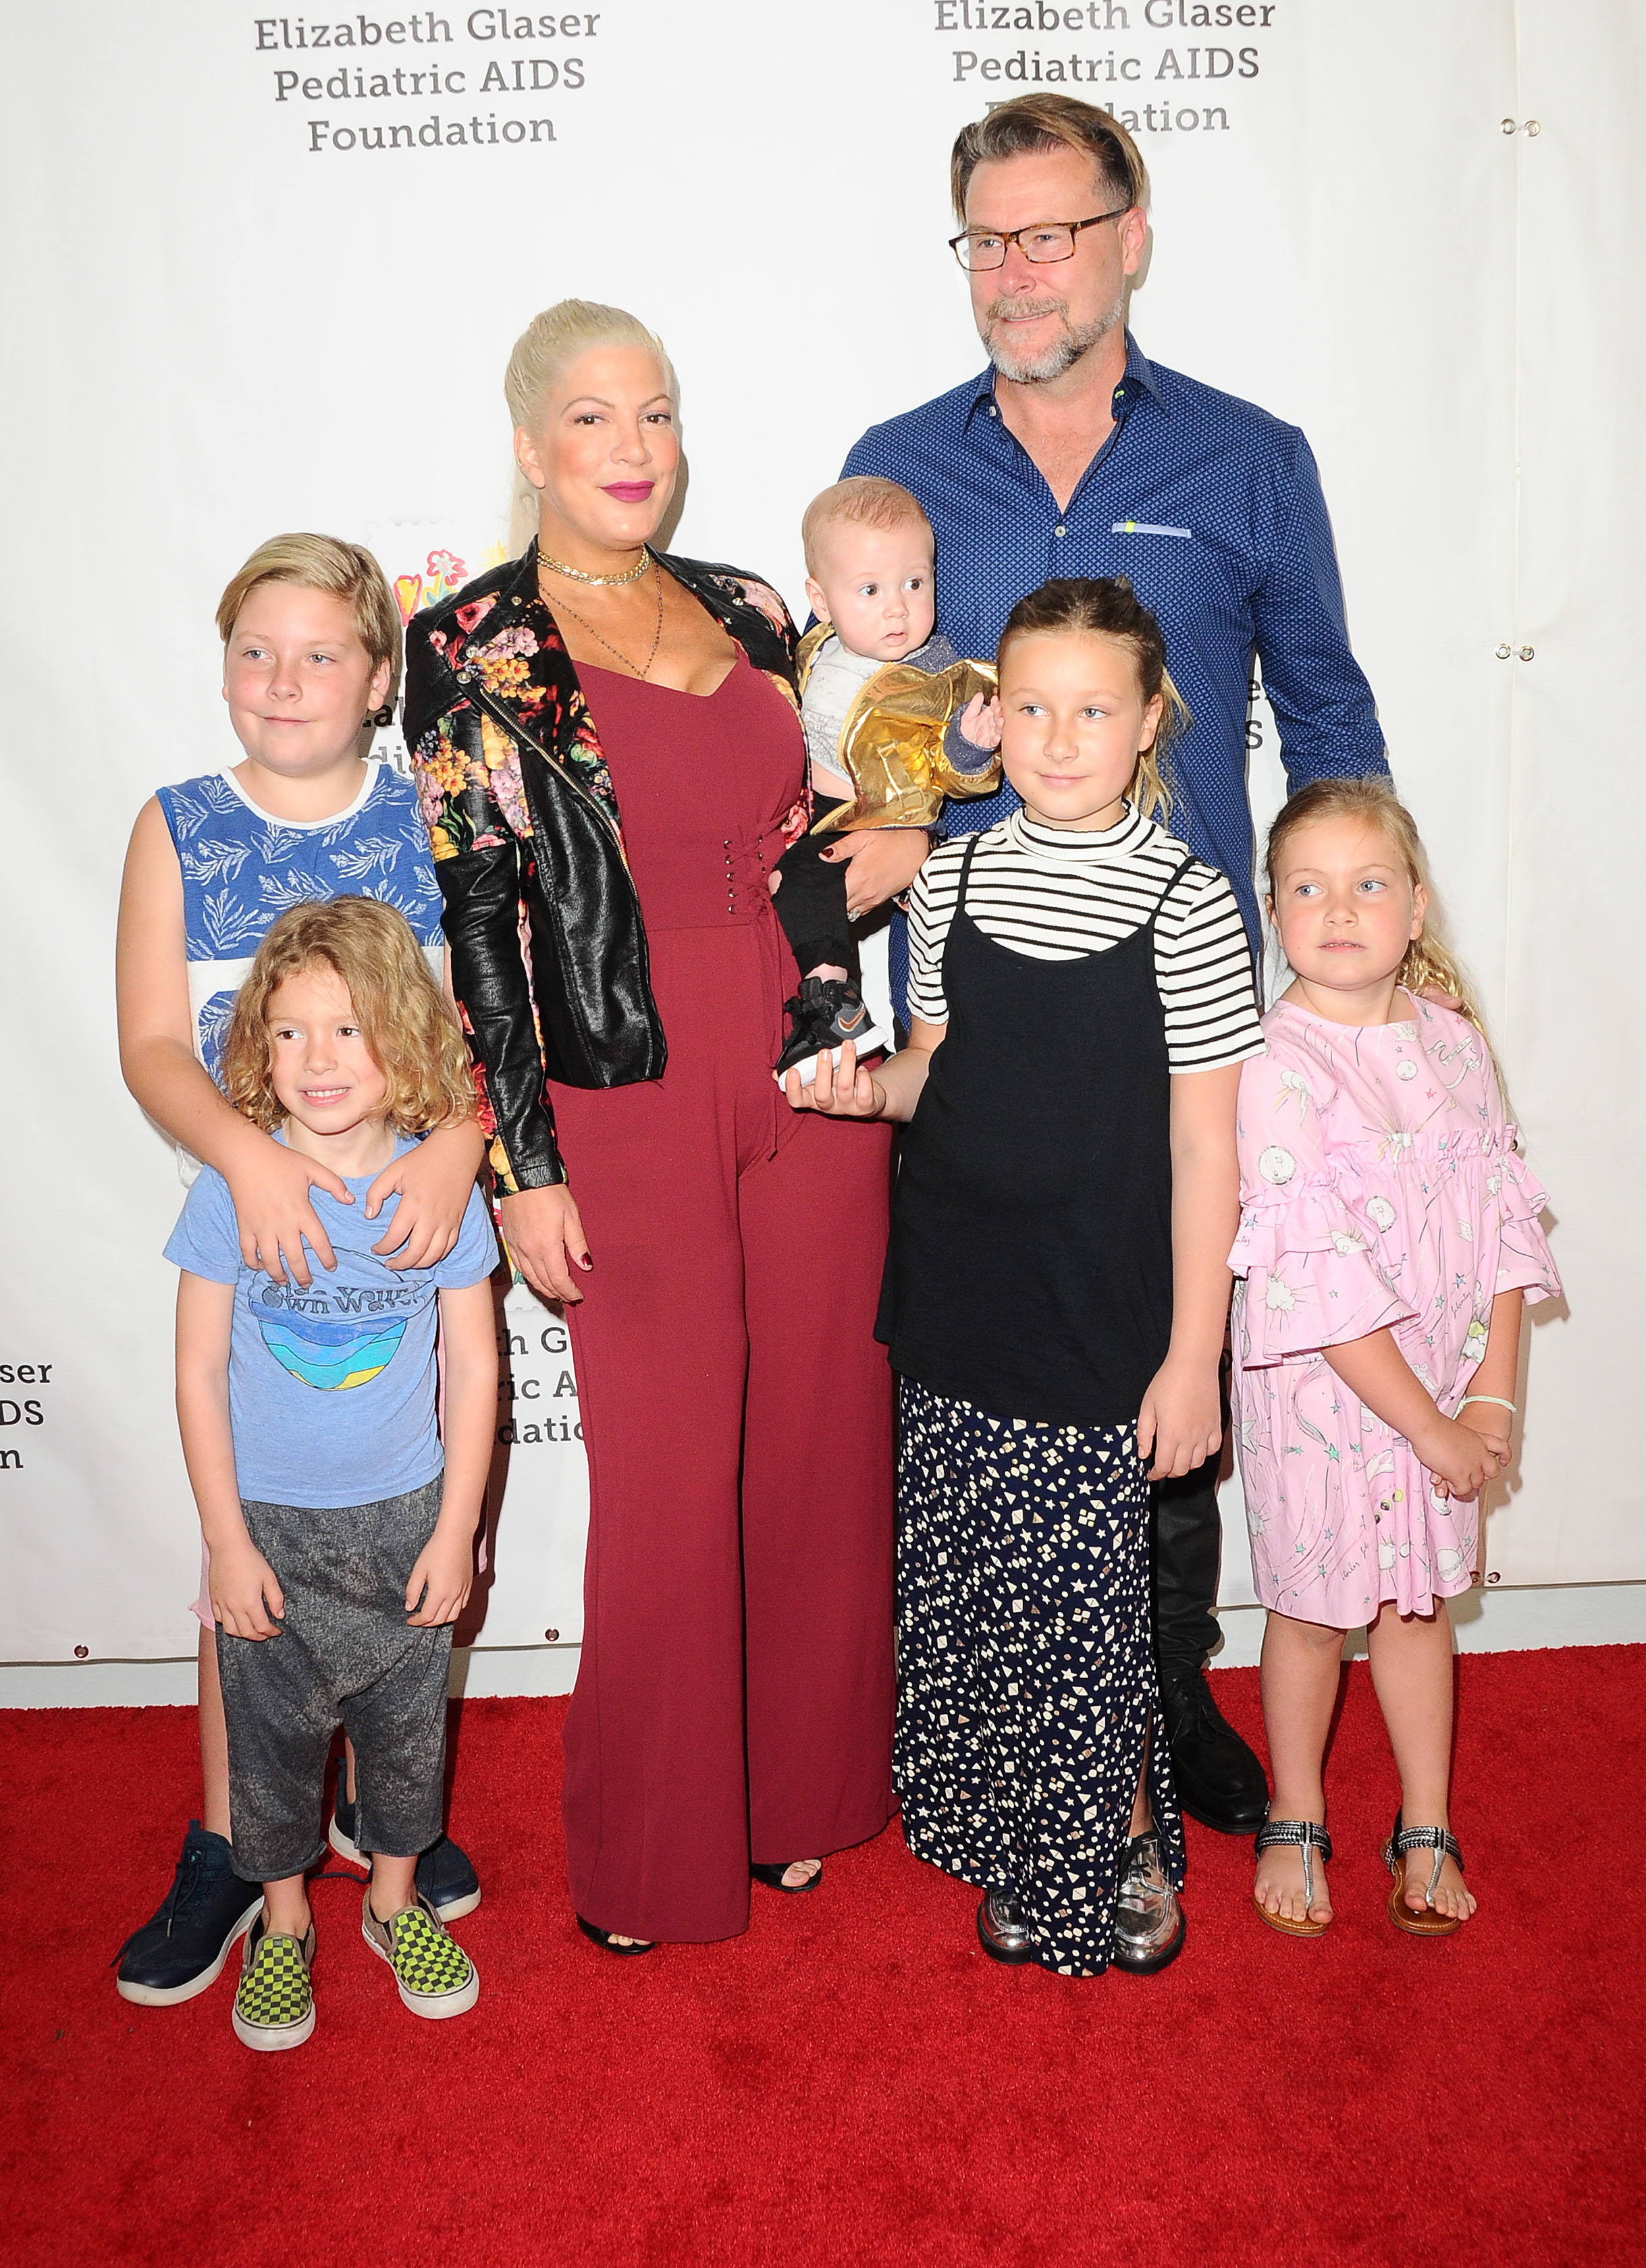 Tori Spelling, Dean McDermott and their family attend the Elizabeth Glaser Pediatric Aids Foundation in Culver City, Calif., on Oct. 29, 2017.